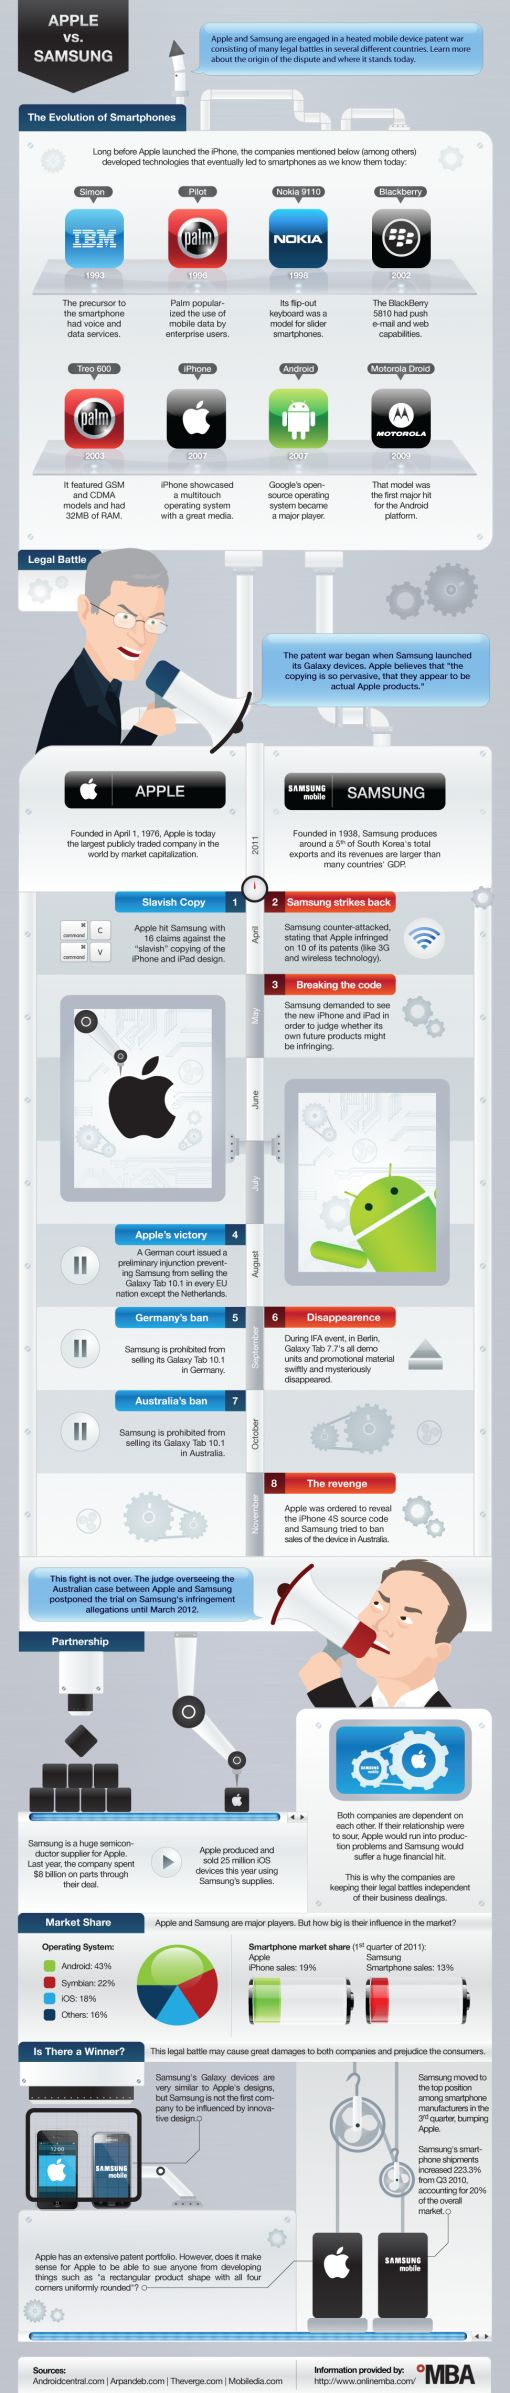 apple-samsung-patents